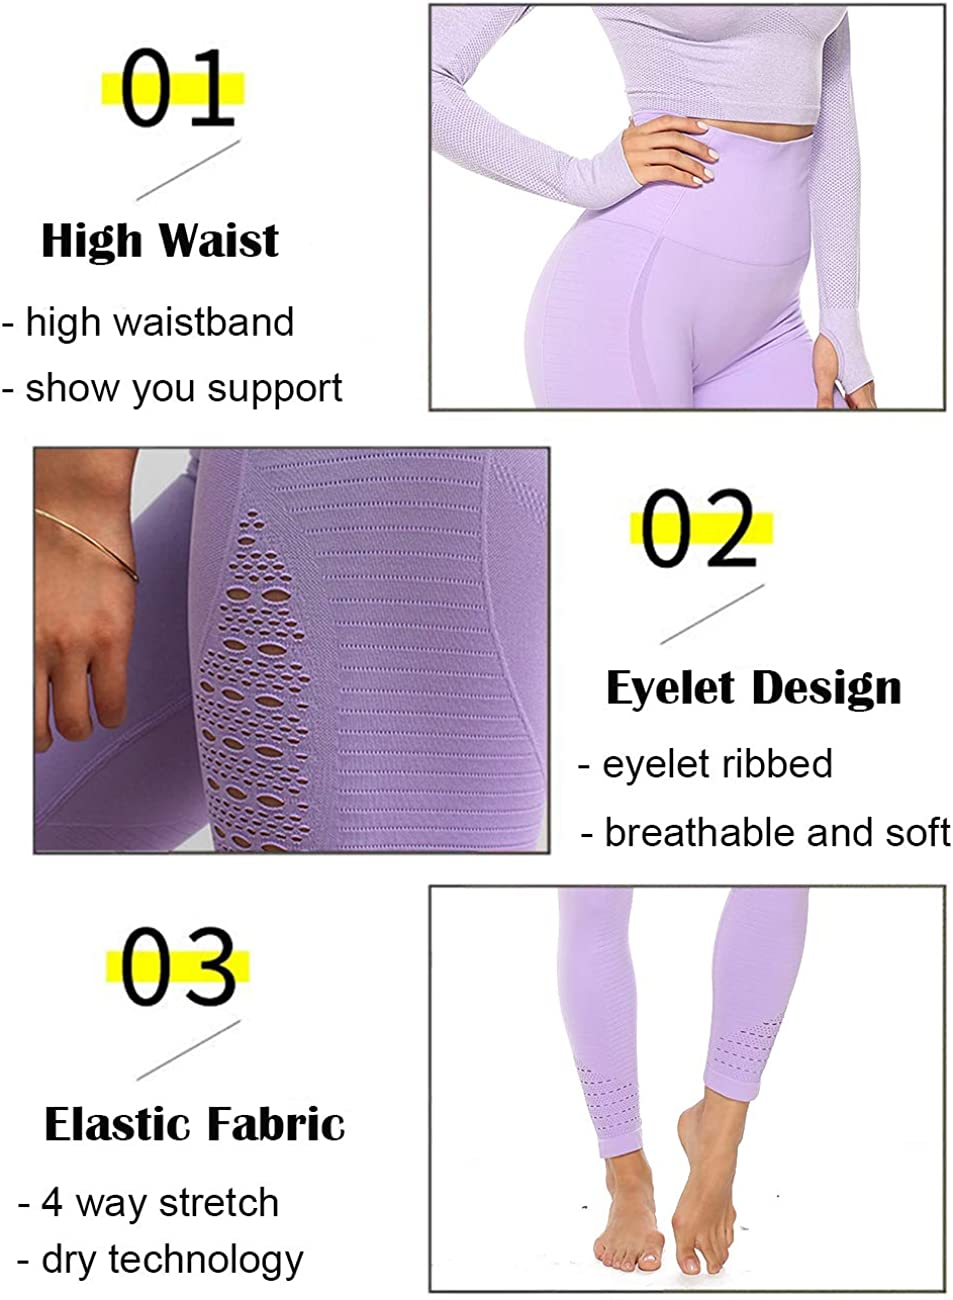 CROSS1946 Womens Seamless Yoga Legging High Waist Workout Compression Fitness Pants Slimming Gym Active Tight